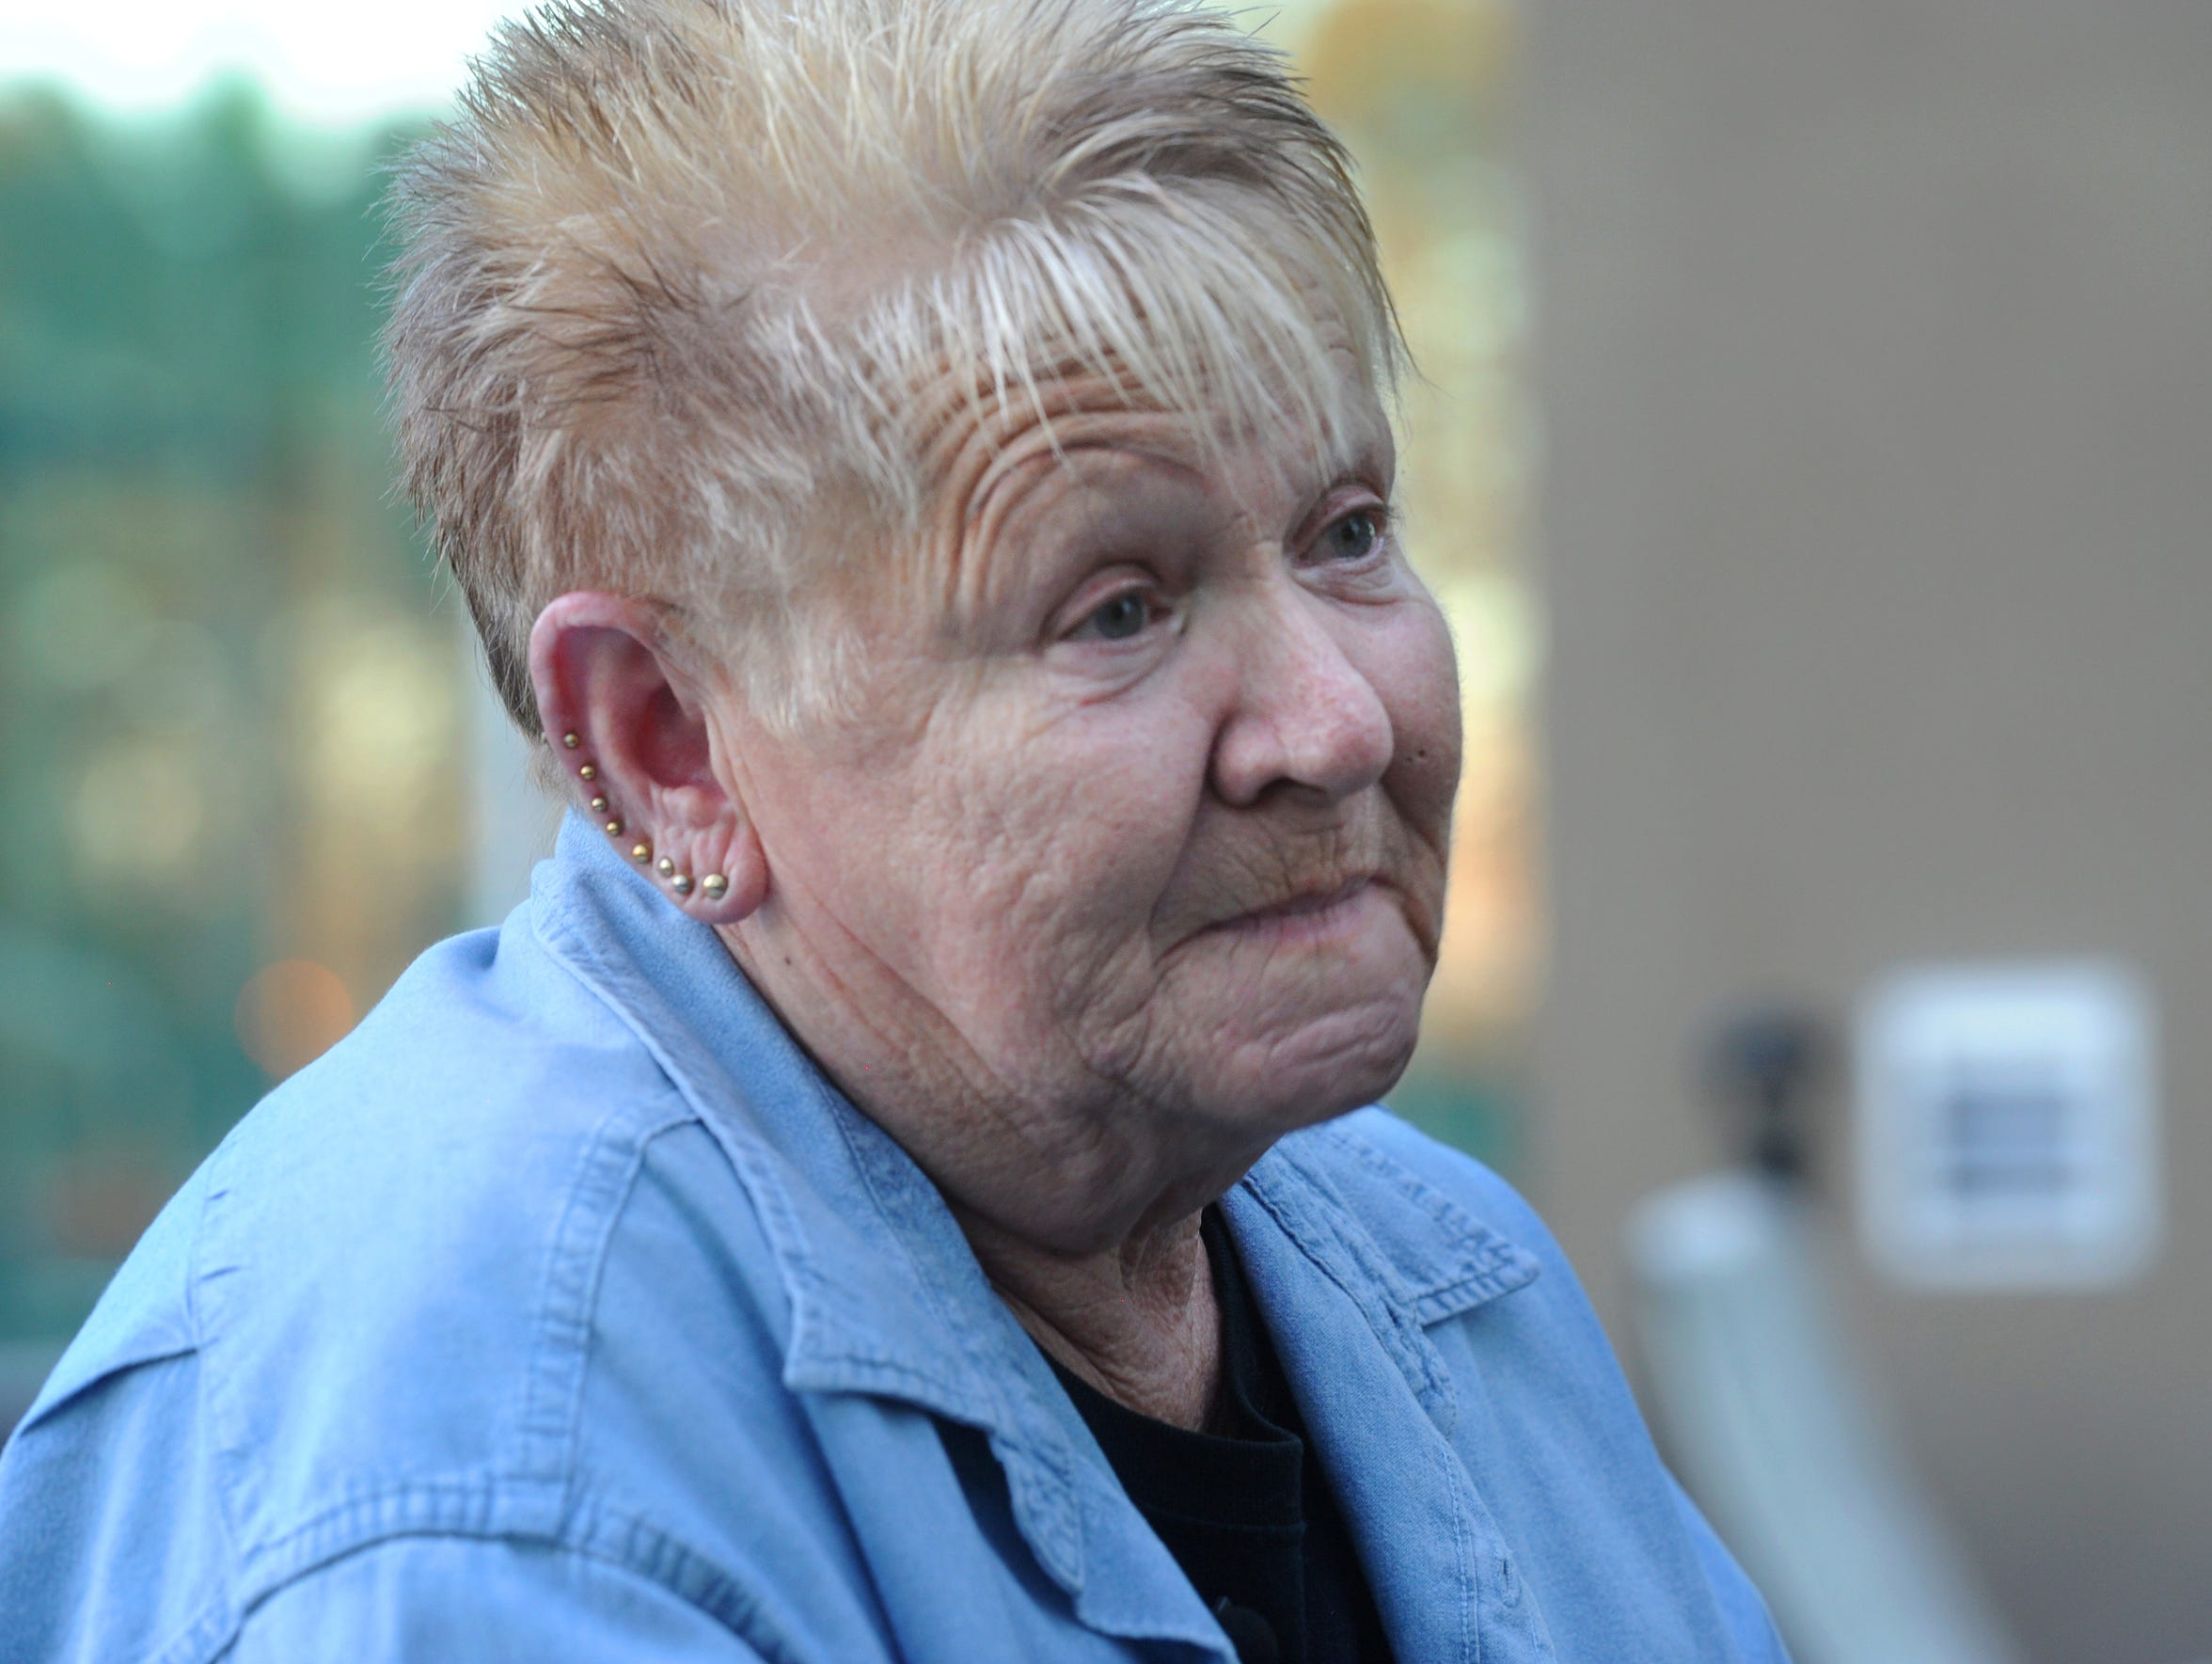 Peggy Murray, 67, of Stockton, speaks with a reporter